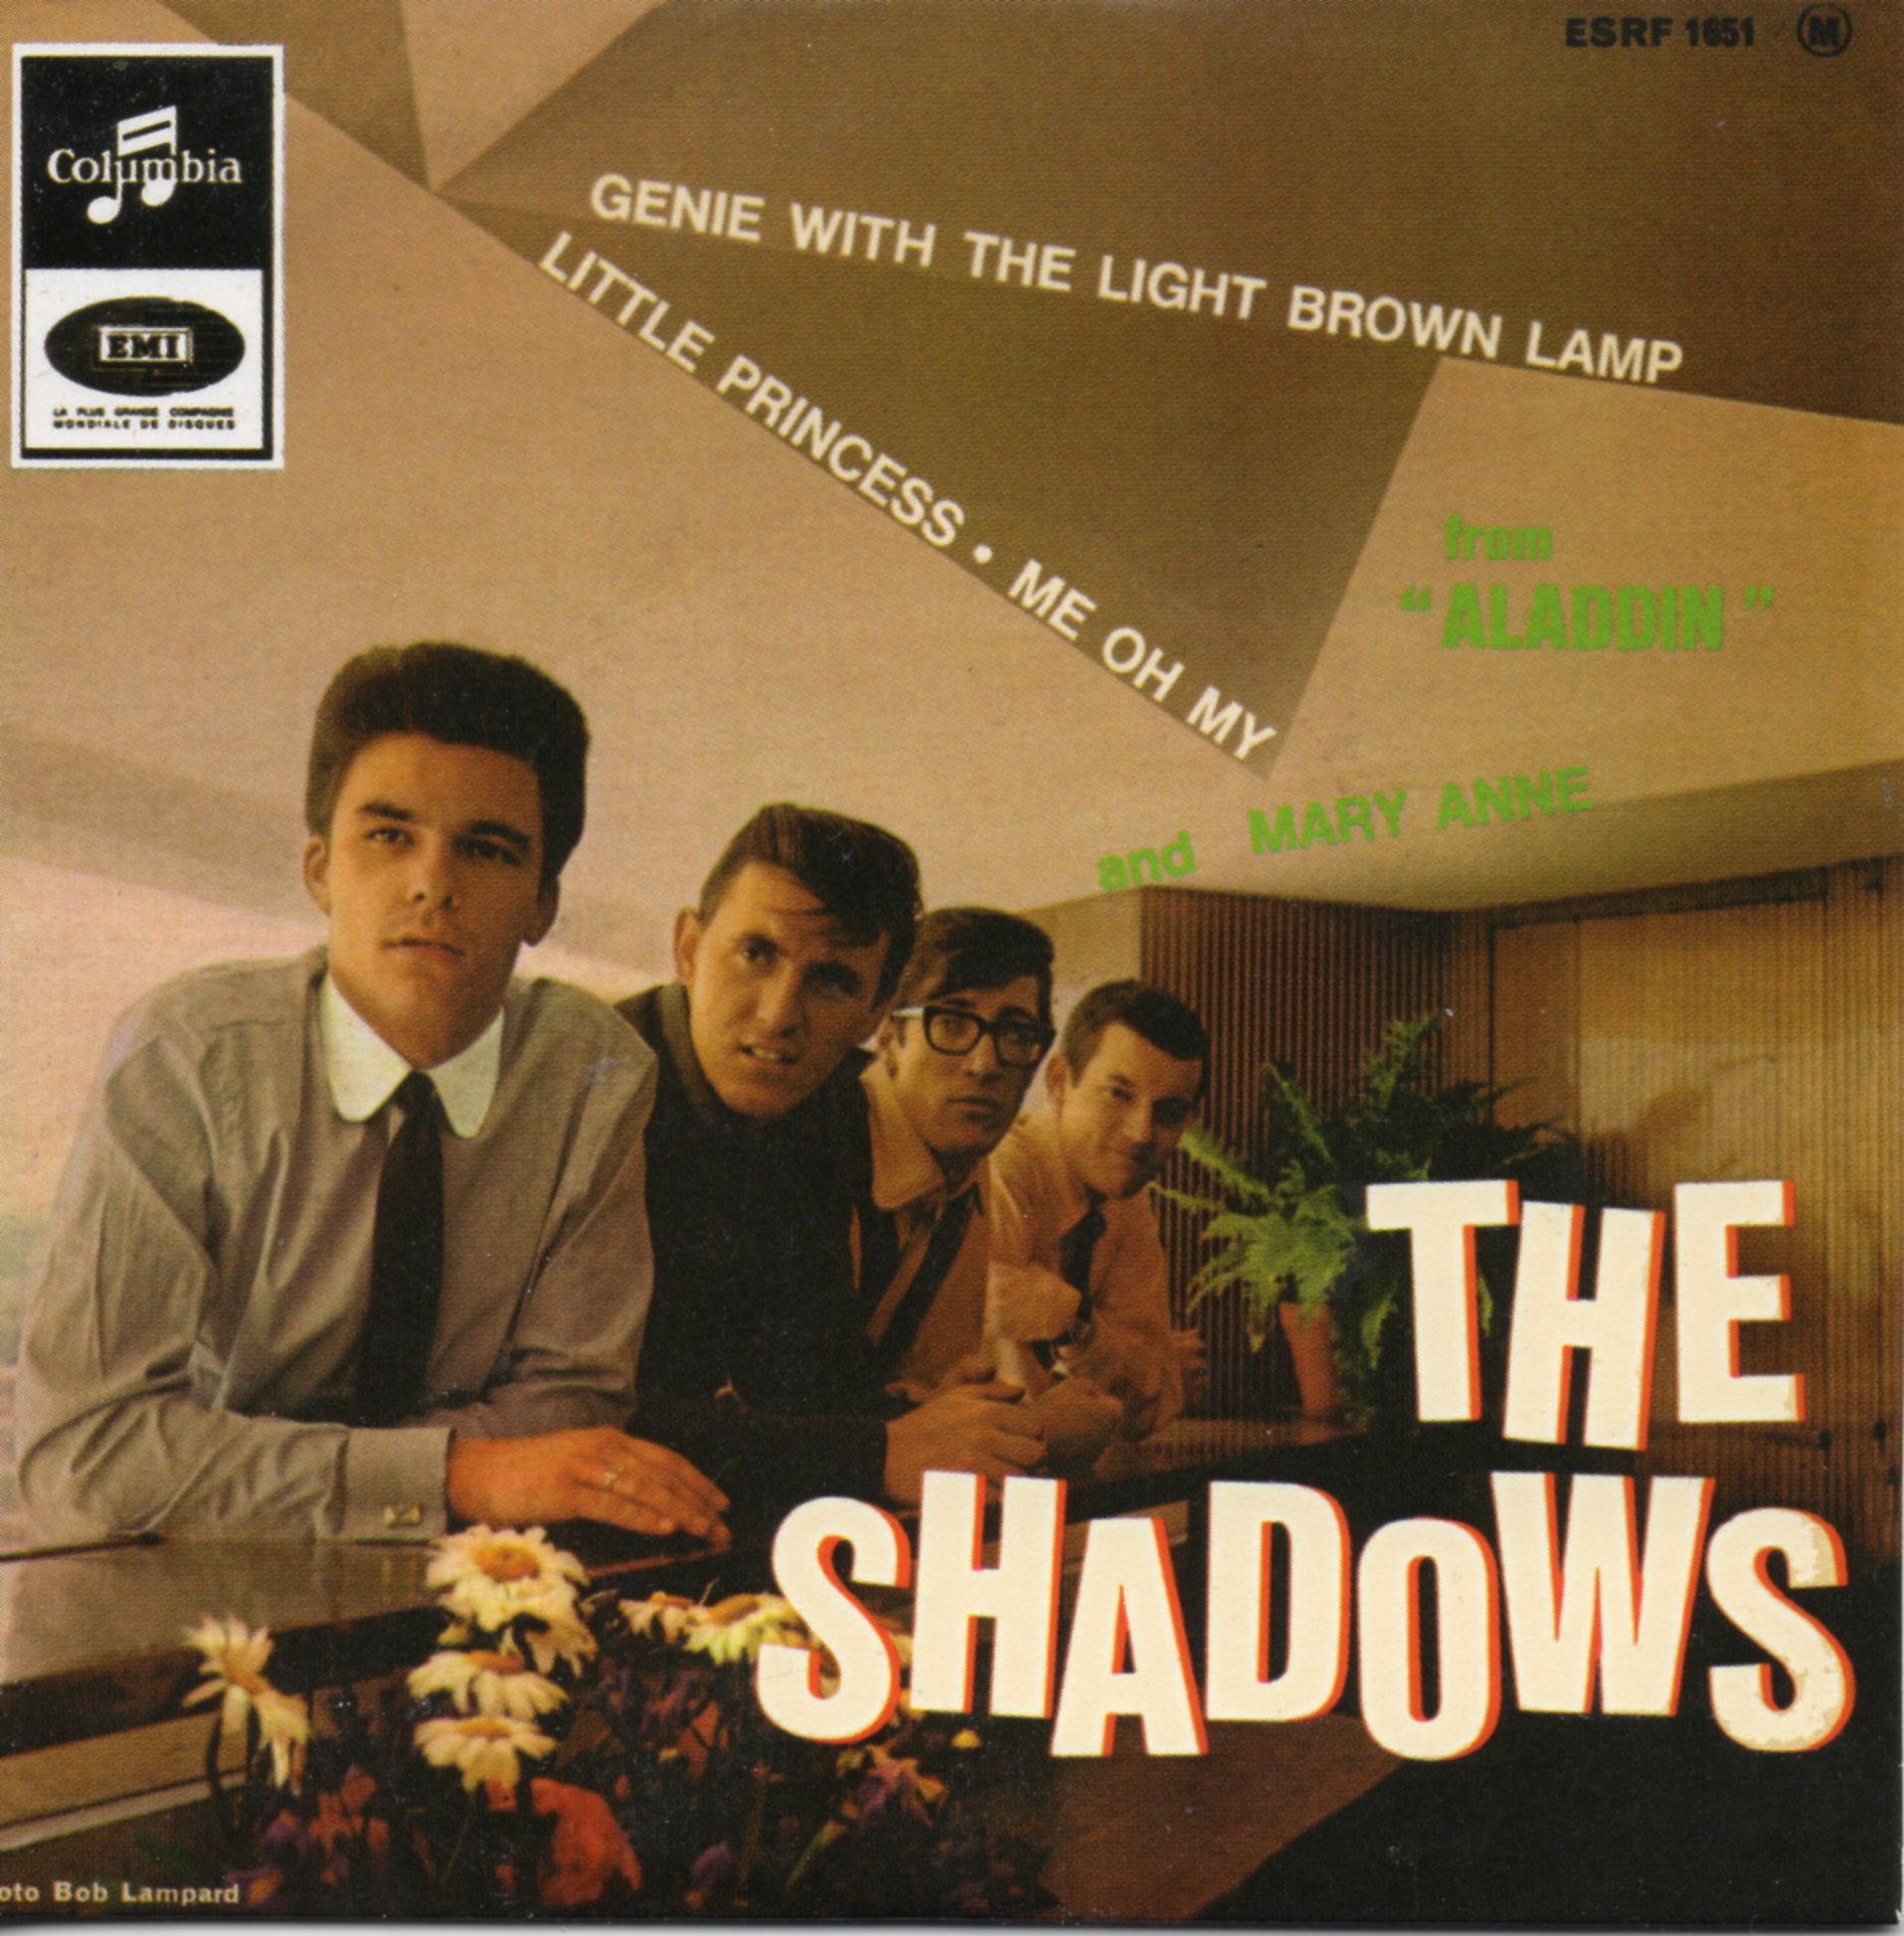 THE SHADOWS - Genie With The Light Brown Lamp - EP REPLICA - 4-track CARD SLEEVE - CD single